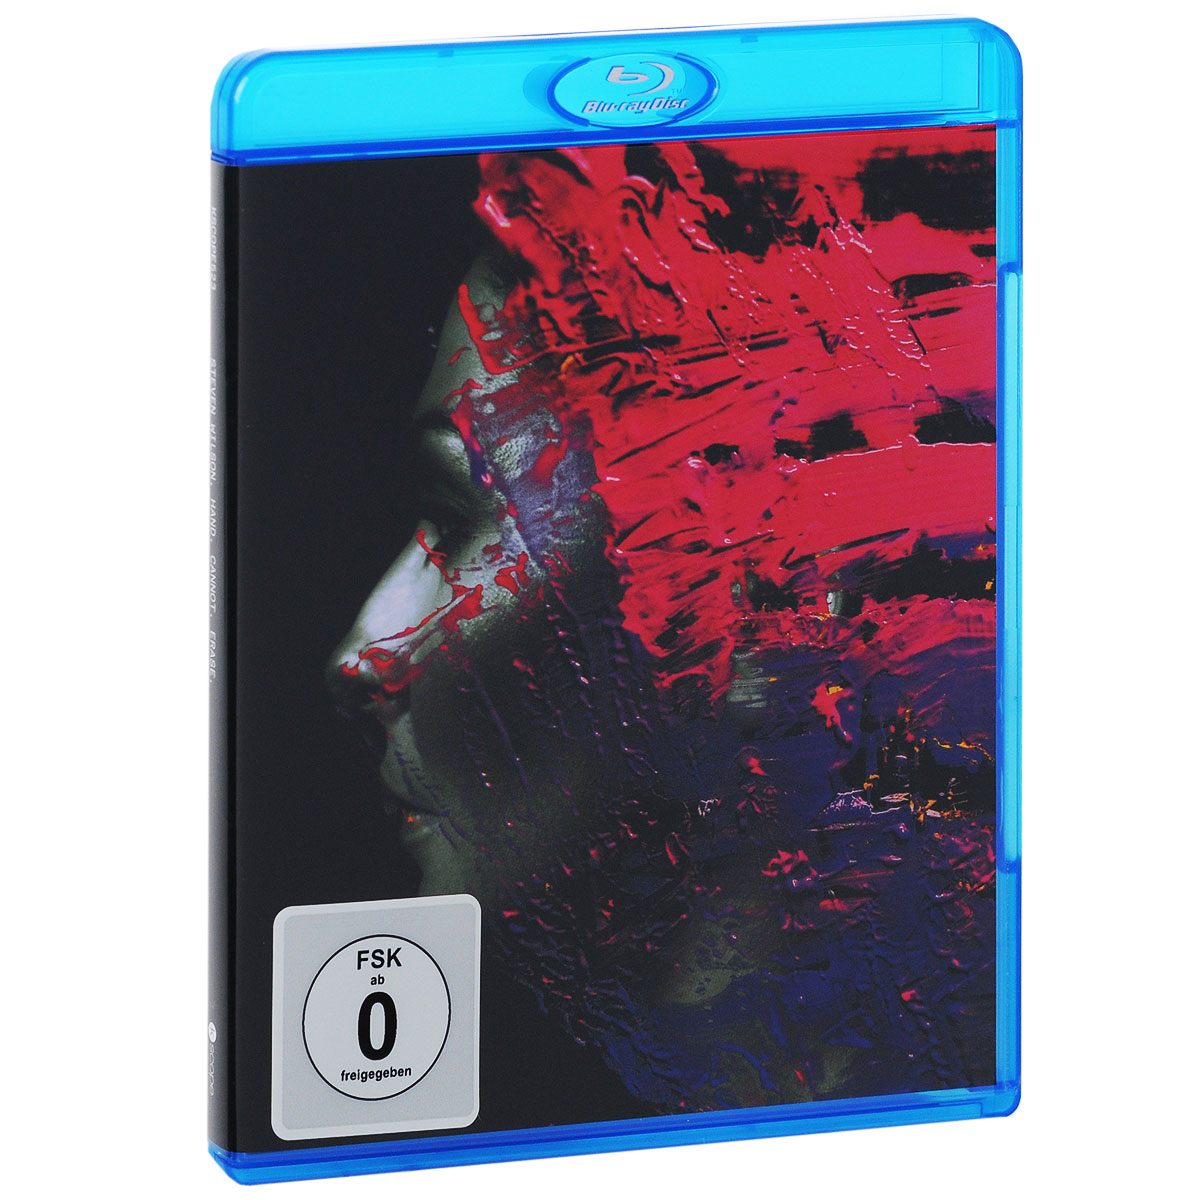 Steven Wilson. Hand. Cannot. Erase (Blu-ray) ancestral knowledge